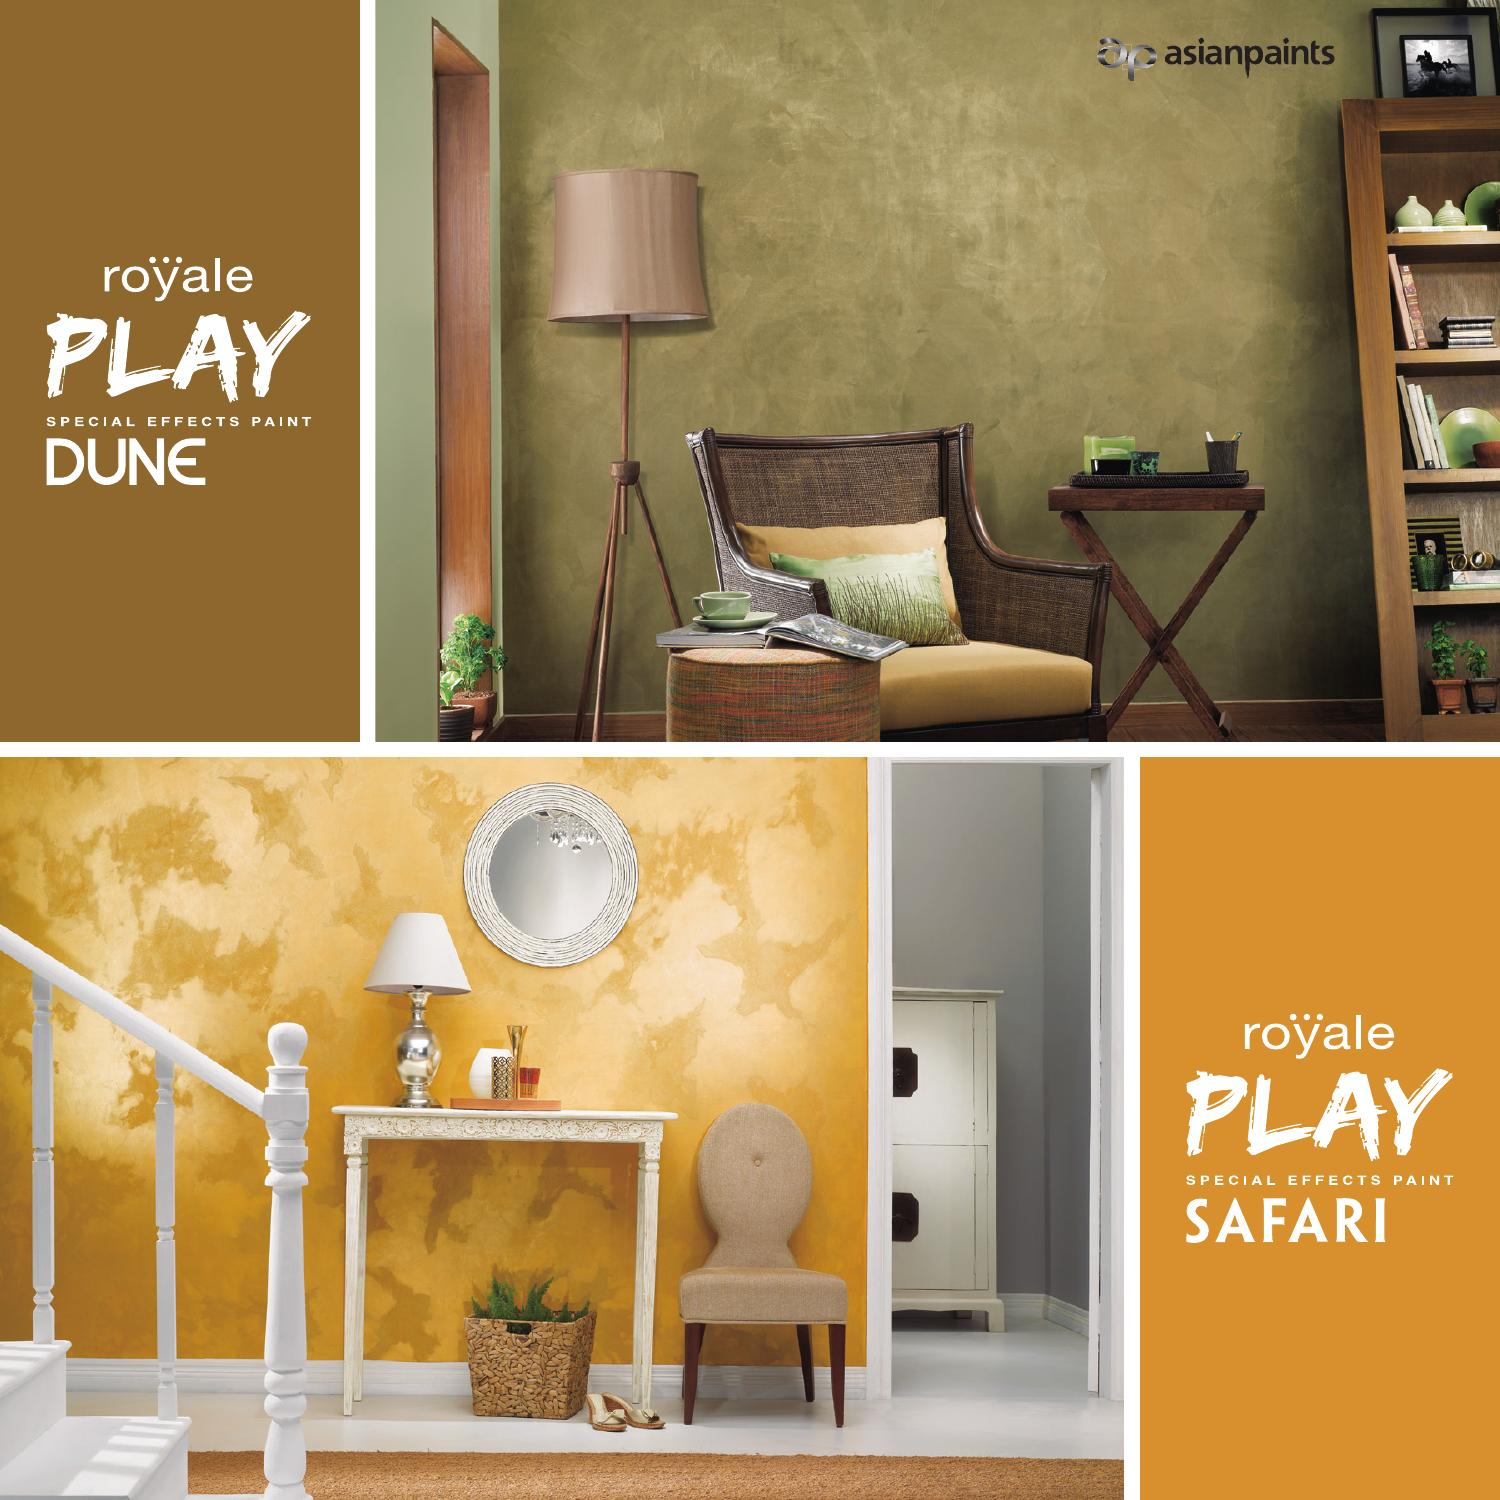 Royale Play Dune Amp Safari By Asian Paints Limited Issuu